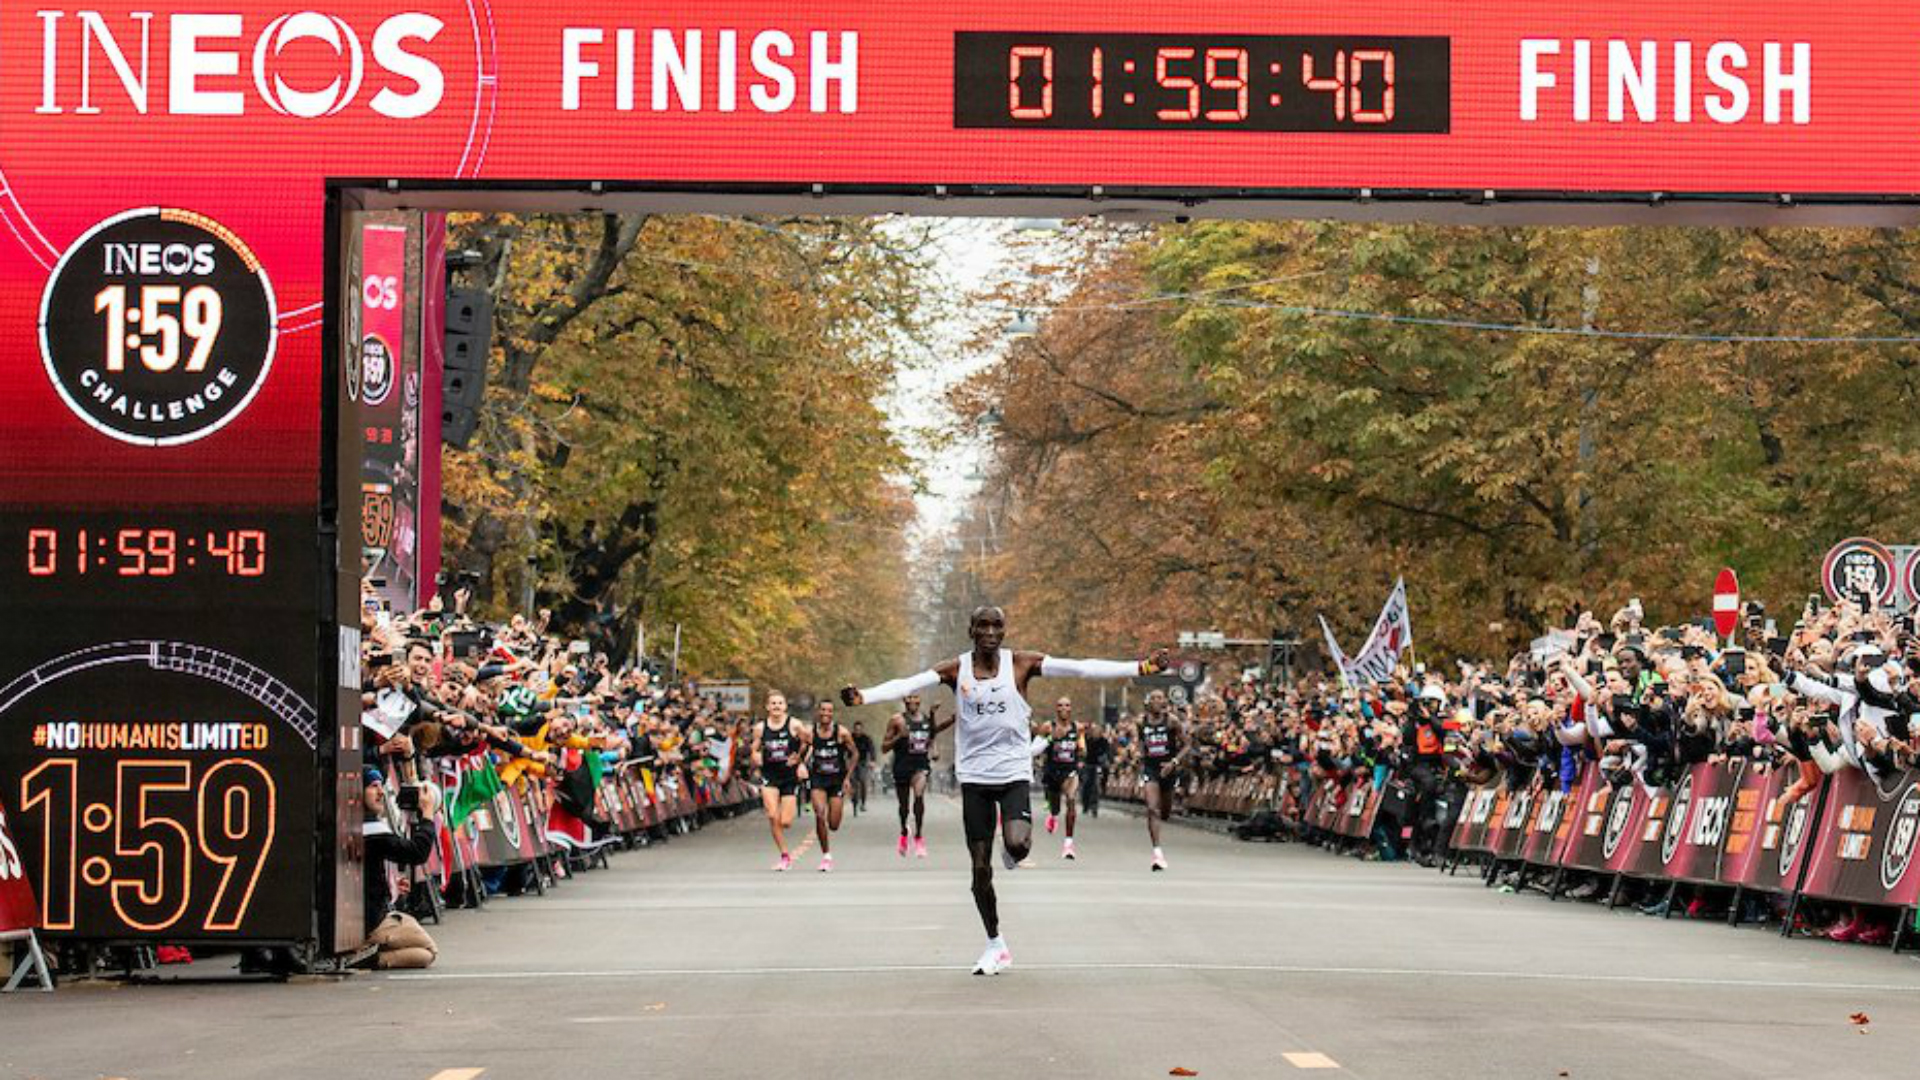 Eliud Kipchoge makes history by running marathon in under two hours